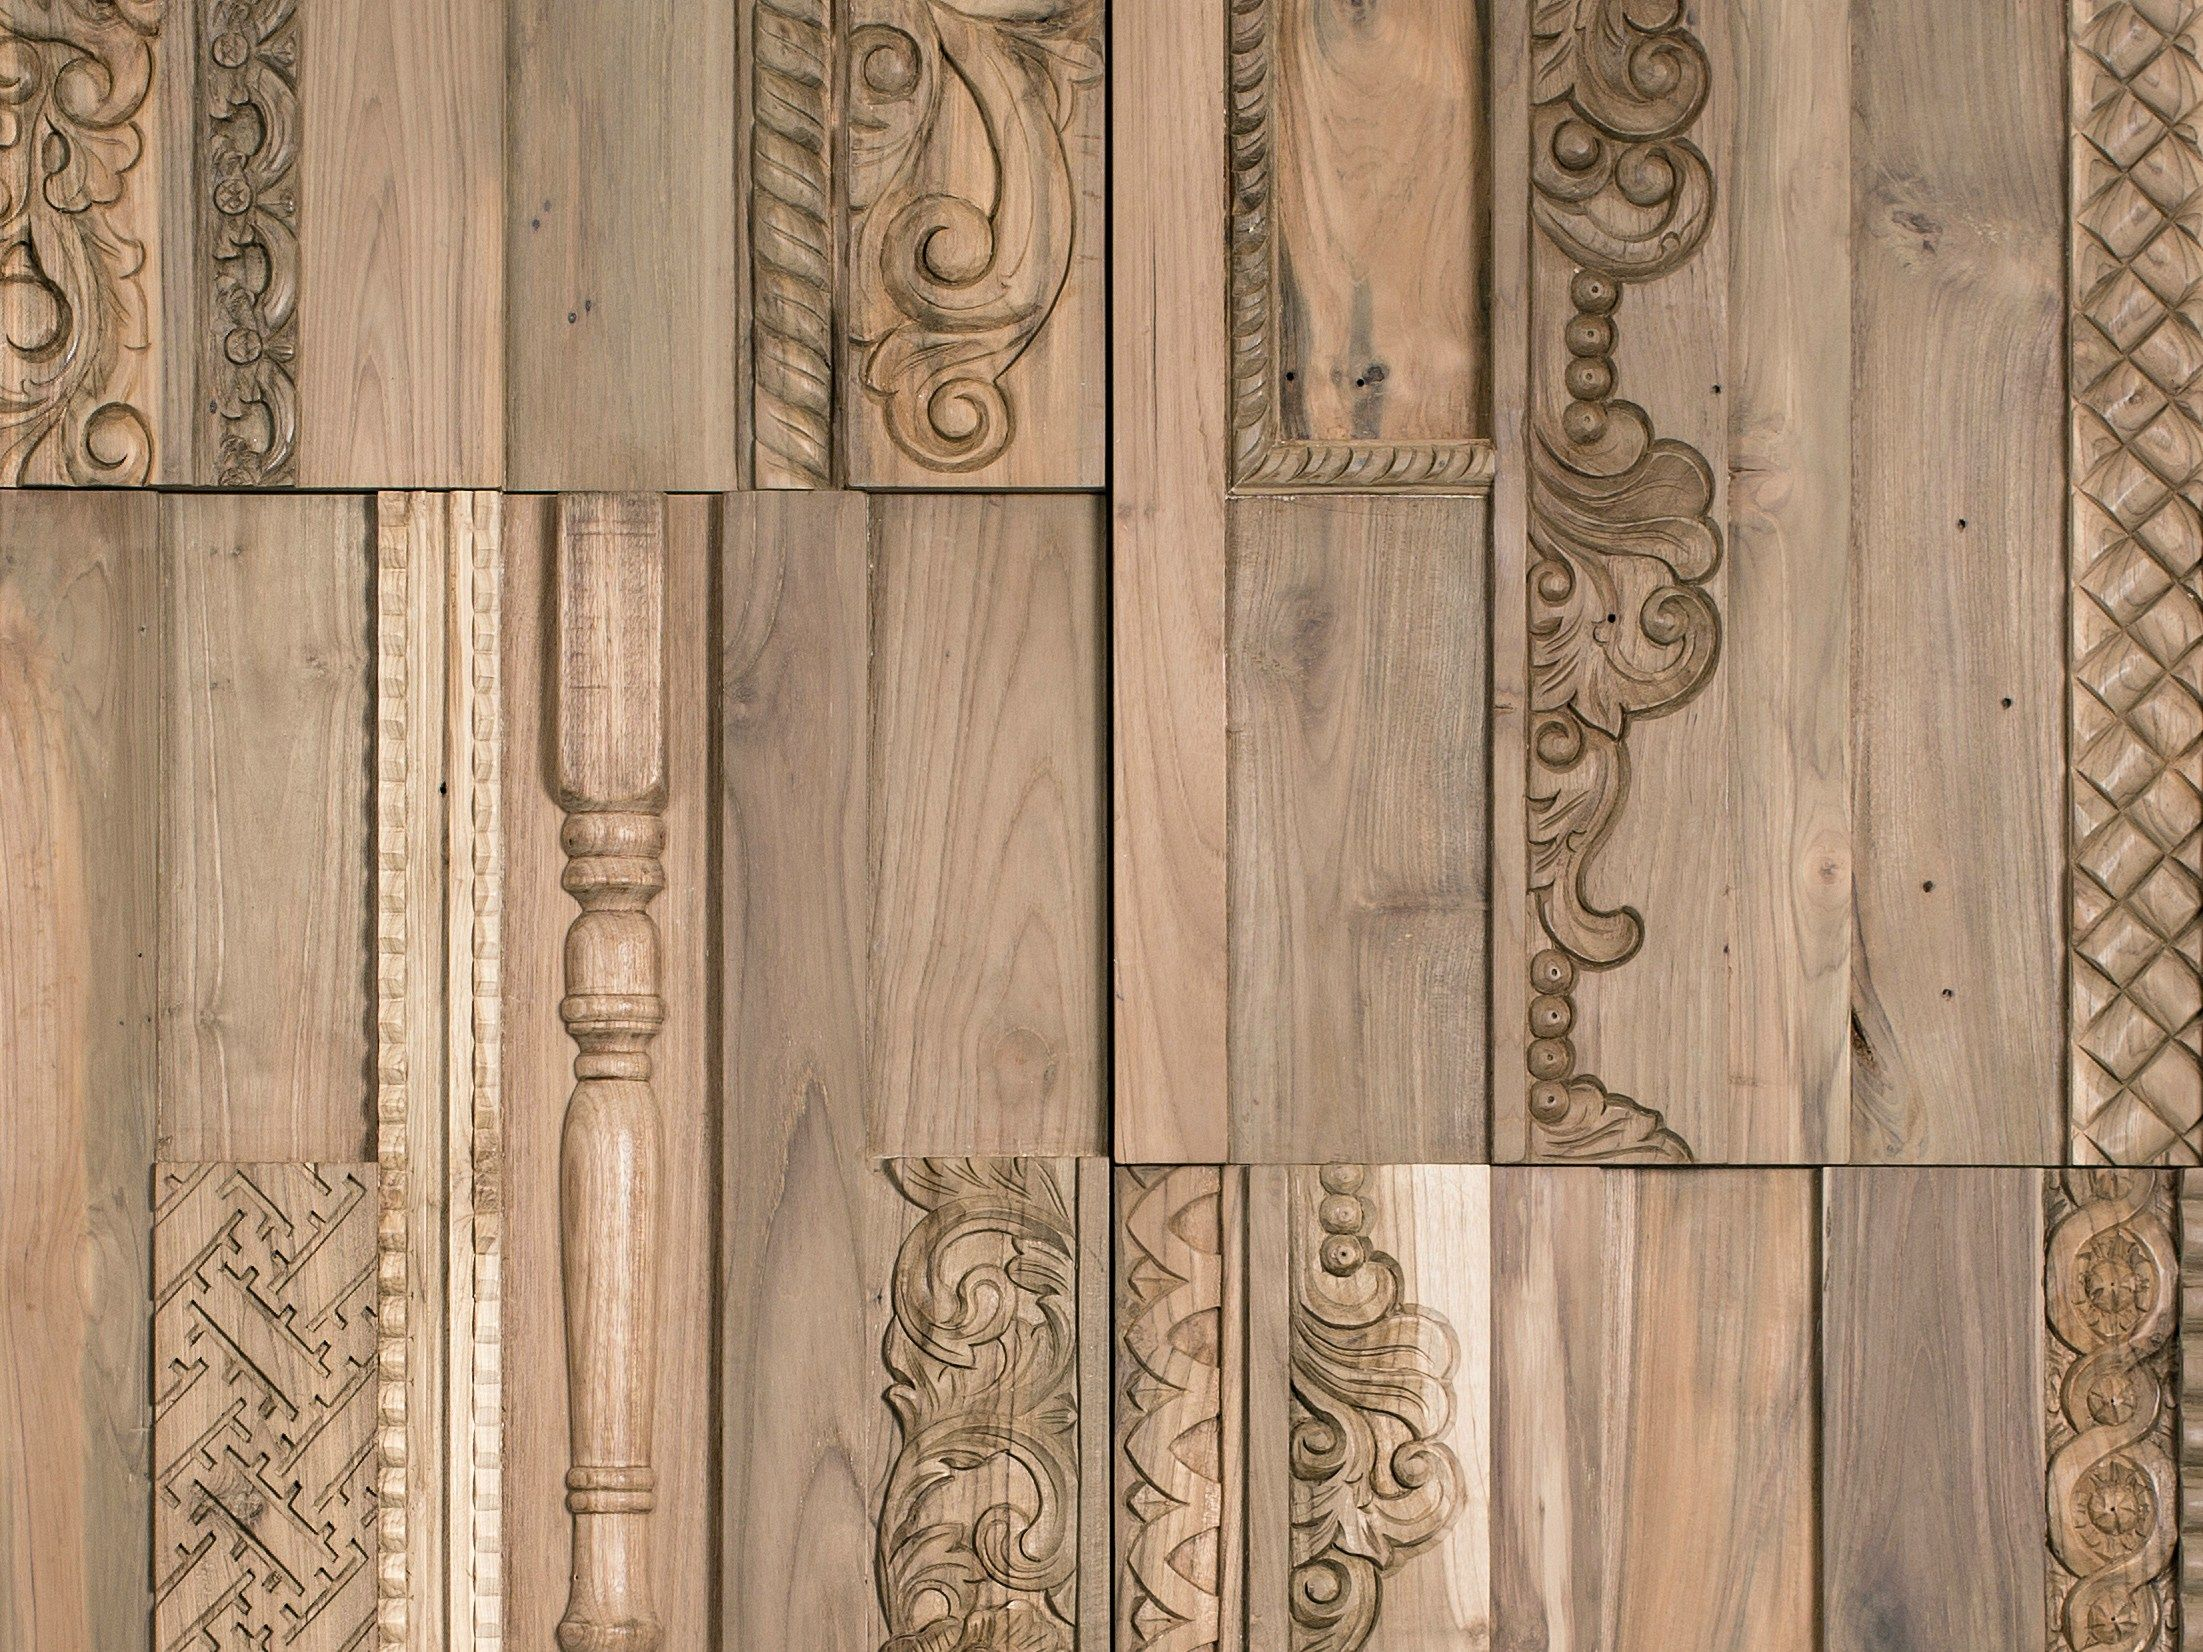 Wood Wall Covering Ideas wall coverings ideas |  wonderwall-studios-wall-coverings